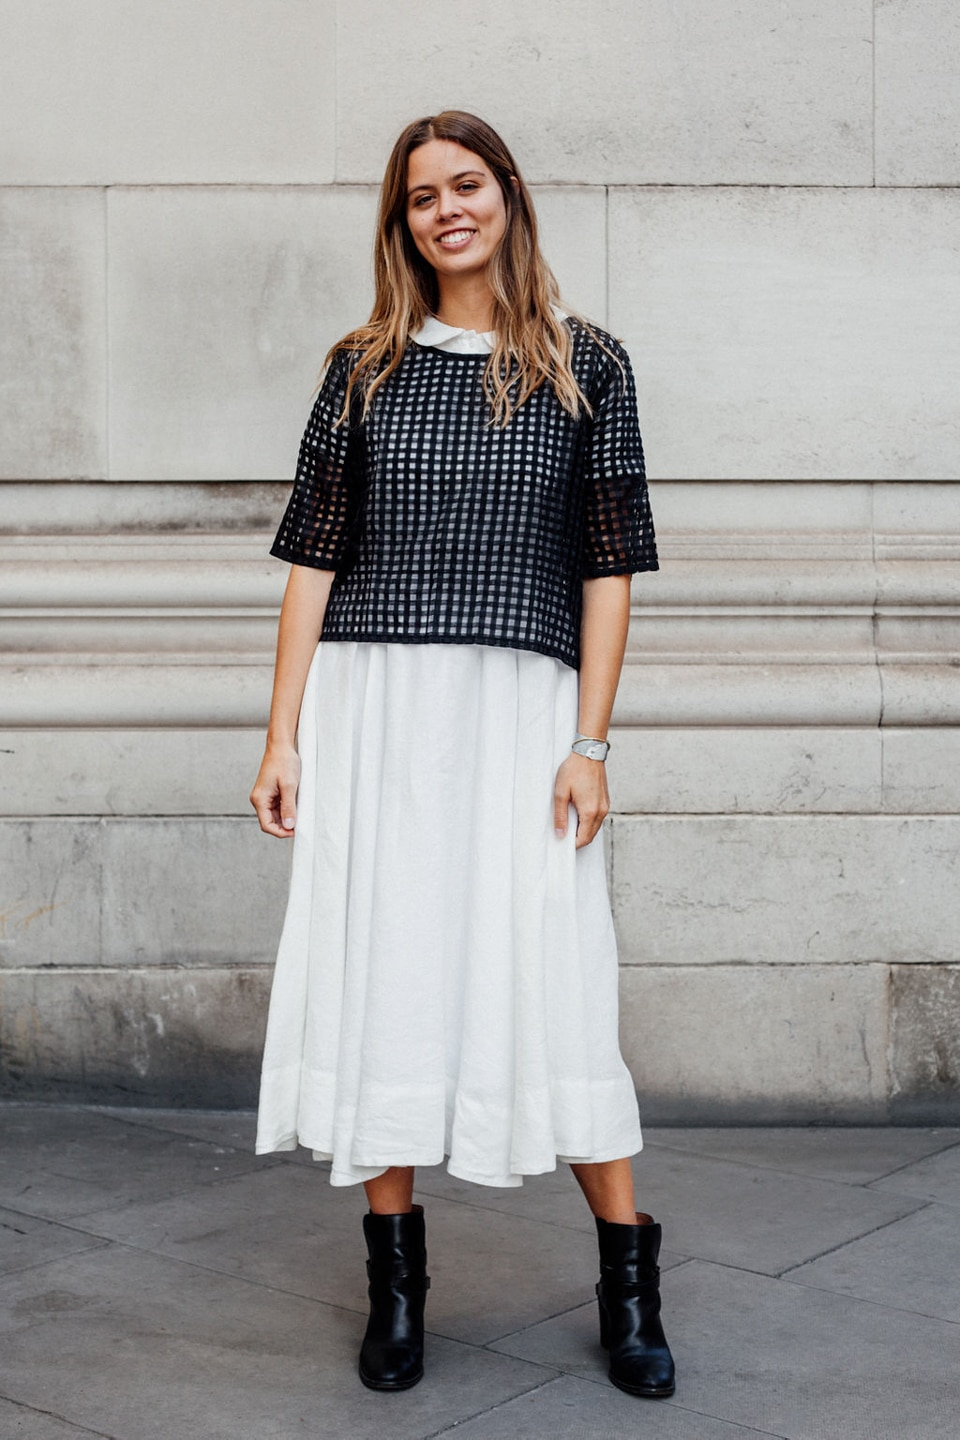 Jil wears white dress with black netted blouse